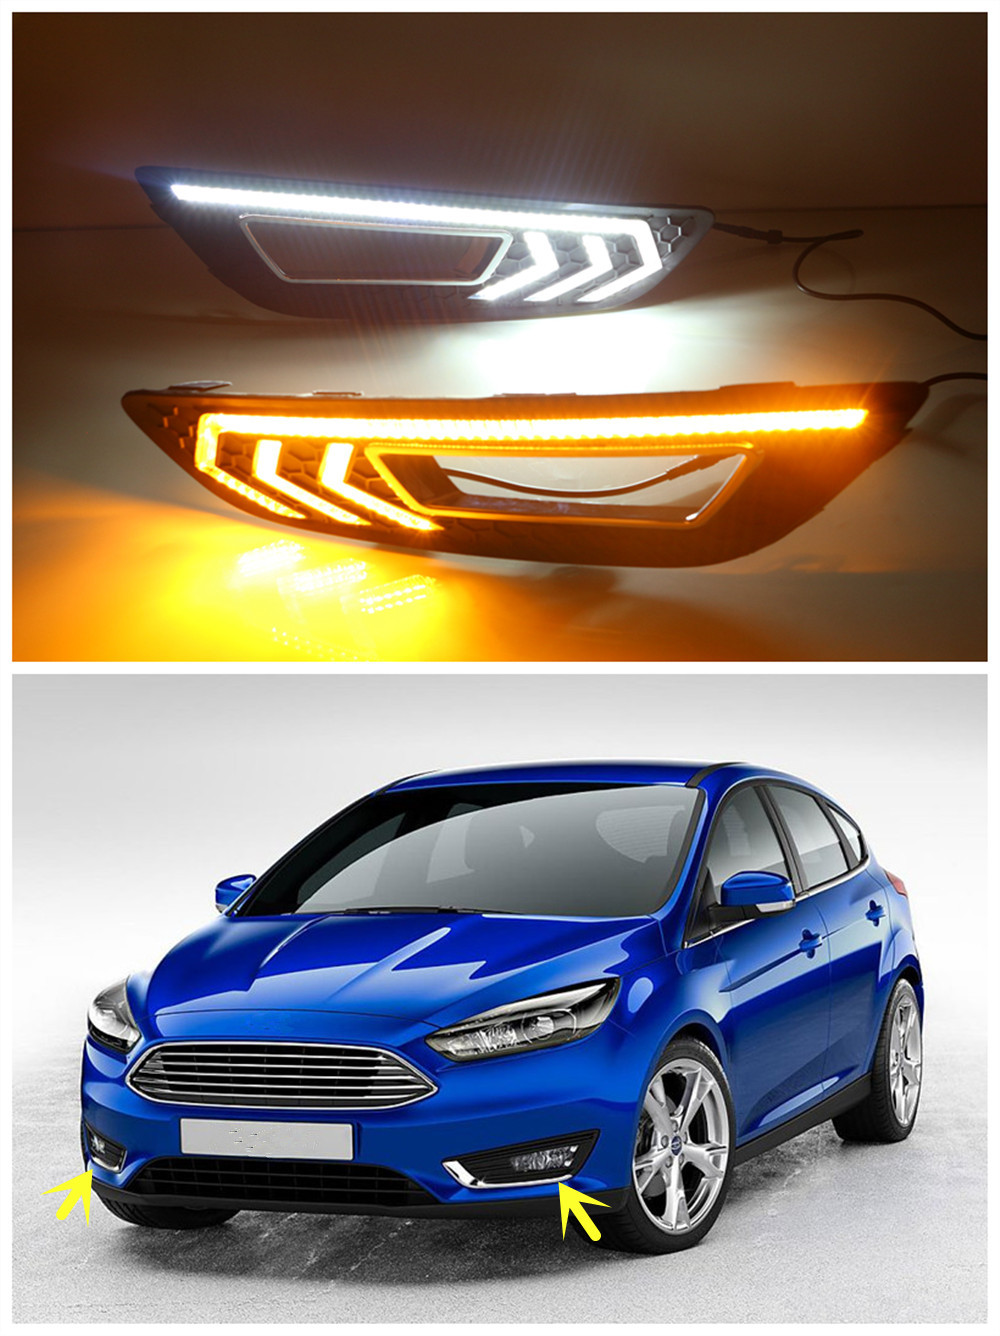 White 12V LED Car Auto Daytime Running Lights DRL Fog Lamp Cover With Yellow Turn Signal Light For Ford Focus 2015 2016 car styling daytime running light drl led with turning signal fog lamp decorative 2 function for ford focus 3 2015 2016